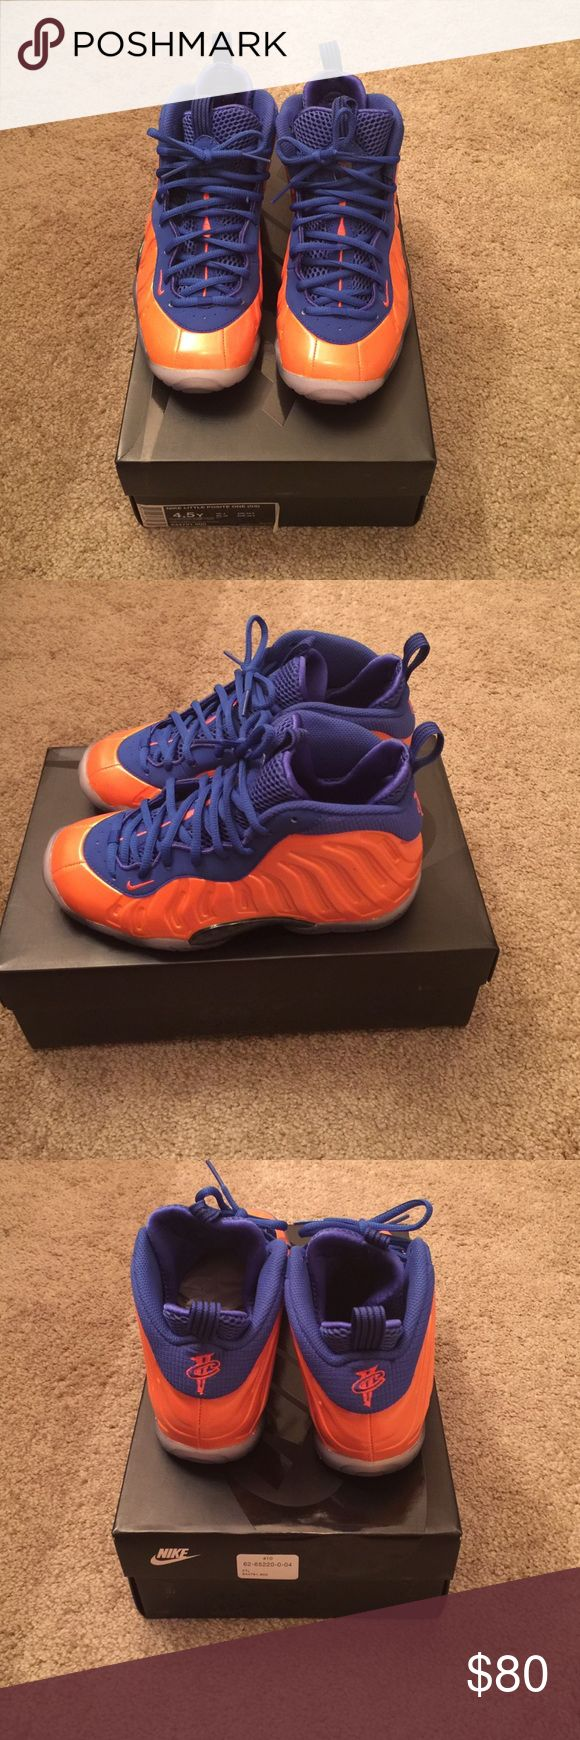 Nike Sneakers (Kids) Knicks foamposites Nike Shoes Athletic Shoes